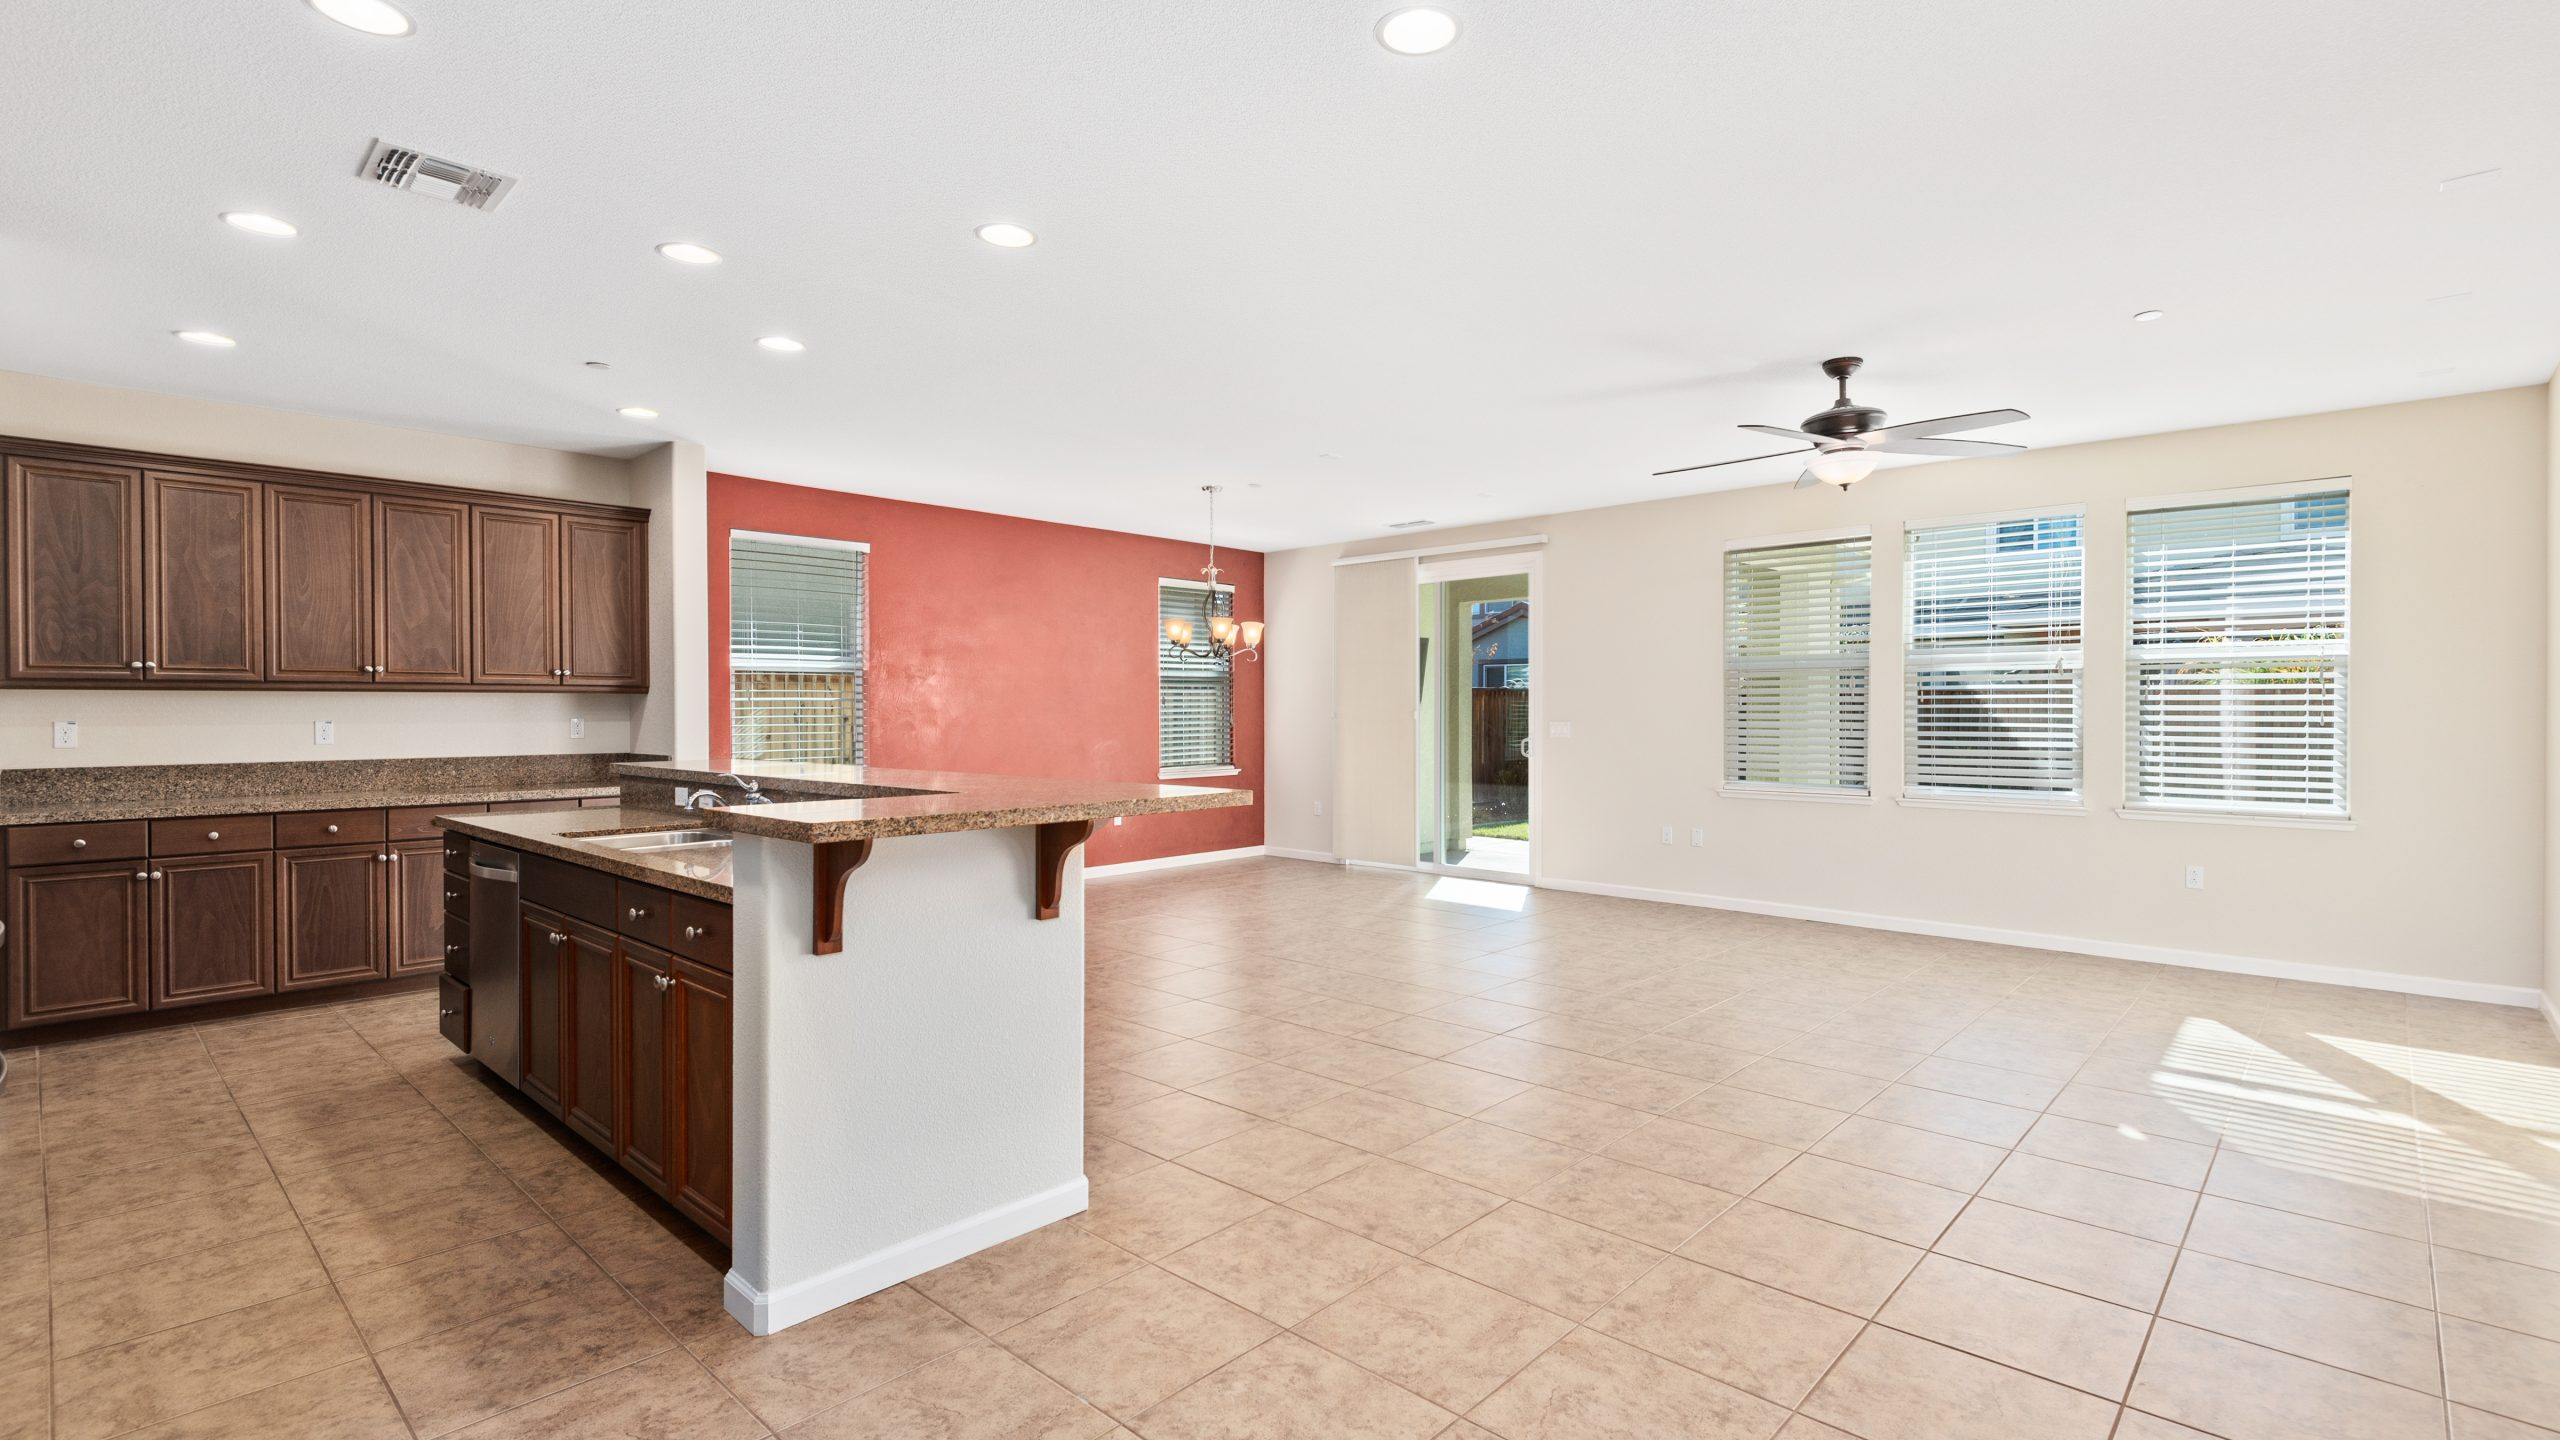 8373-Brookhaven-Circle-Discovery-Bay-7-of-42-1541610445